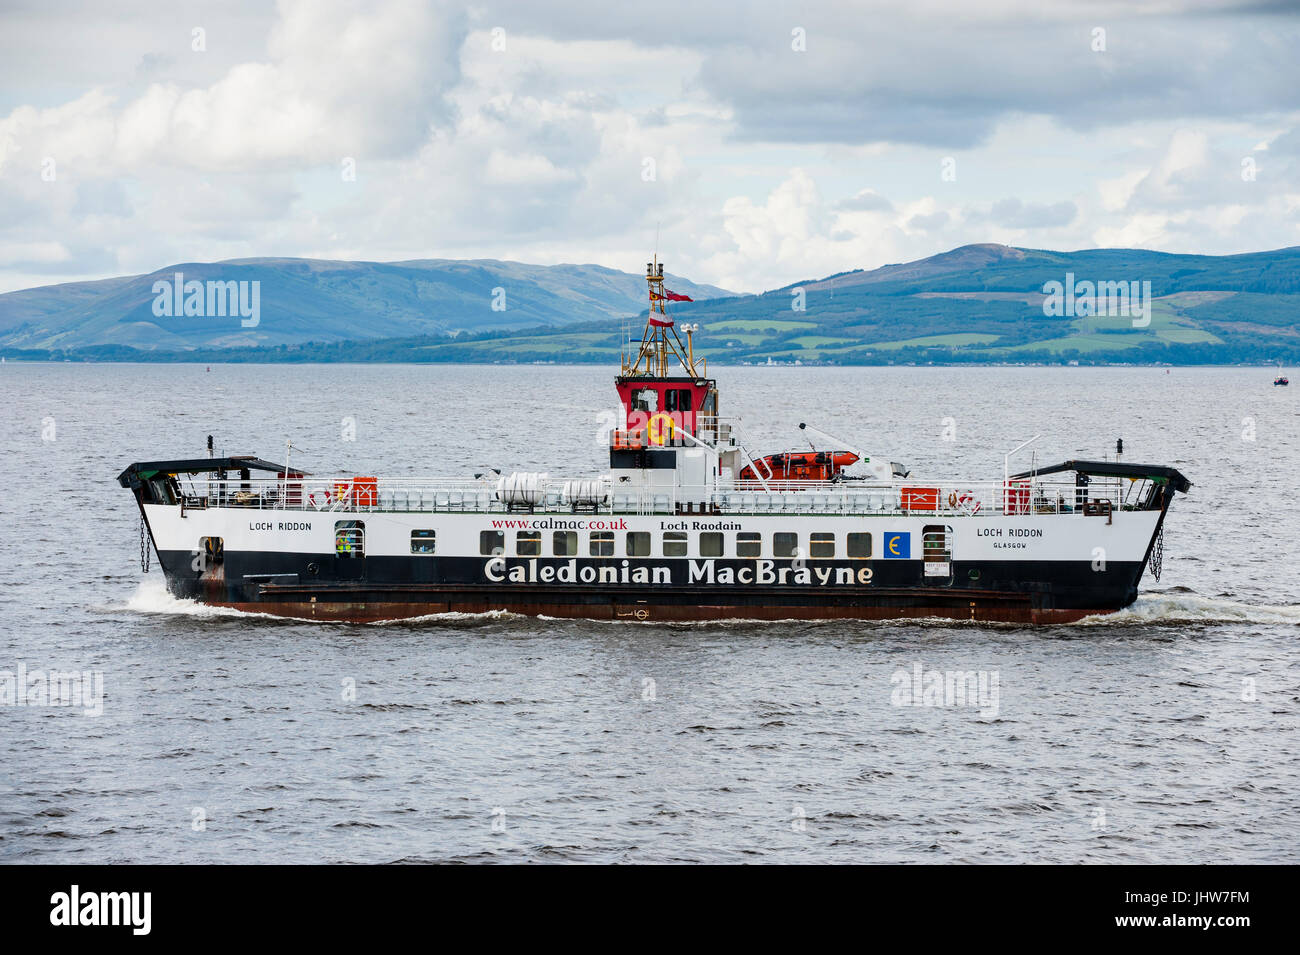 Largs, Scotland - August 17, 2011: A Caledonian MacBrayne ferry. The ferry travels between Largs on the Scottish Stock Photo